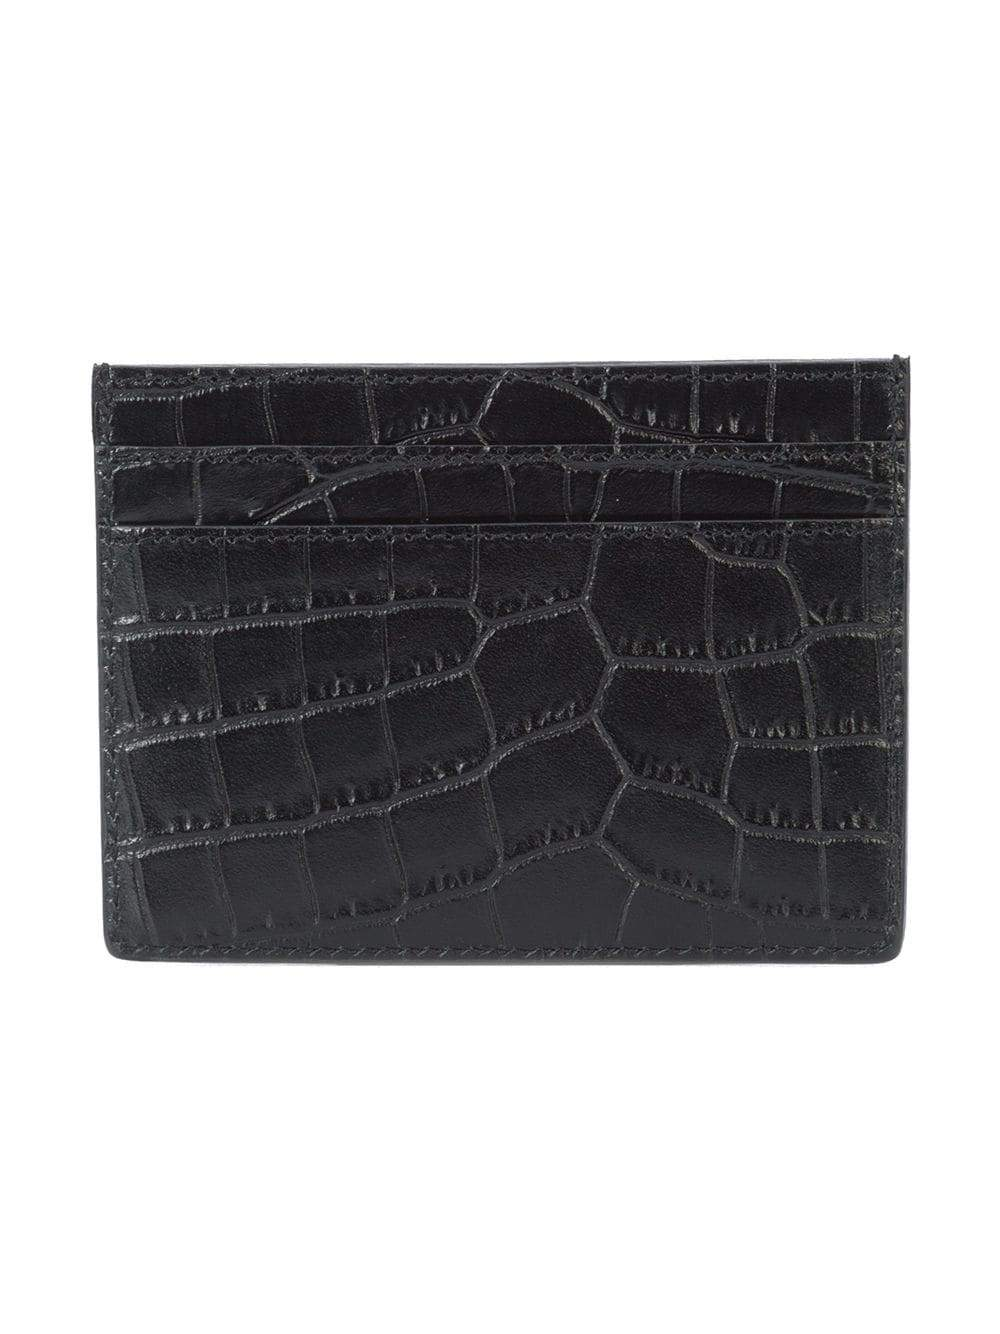 Black Embossed Leather Credit Card Case